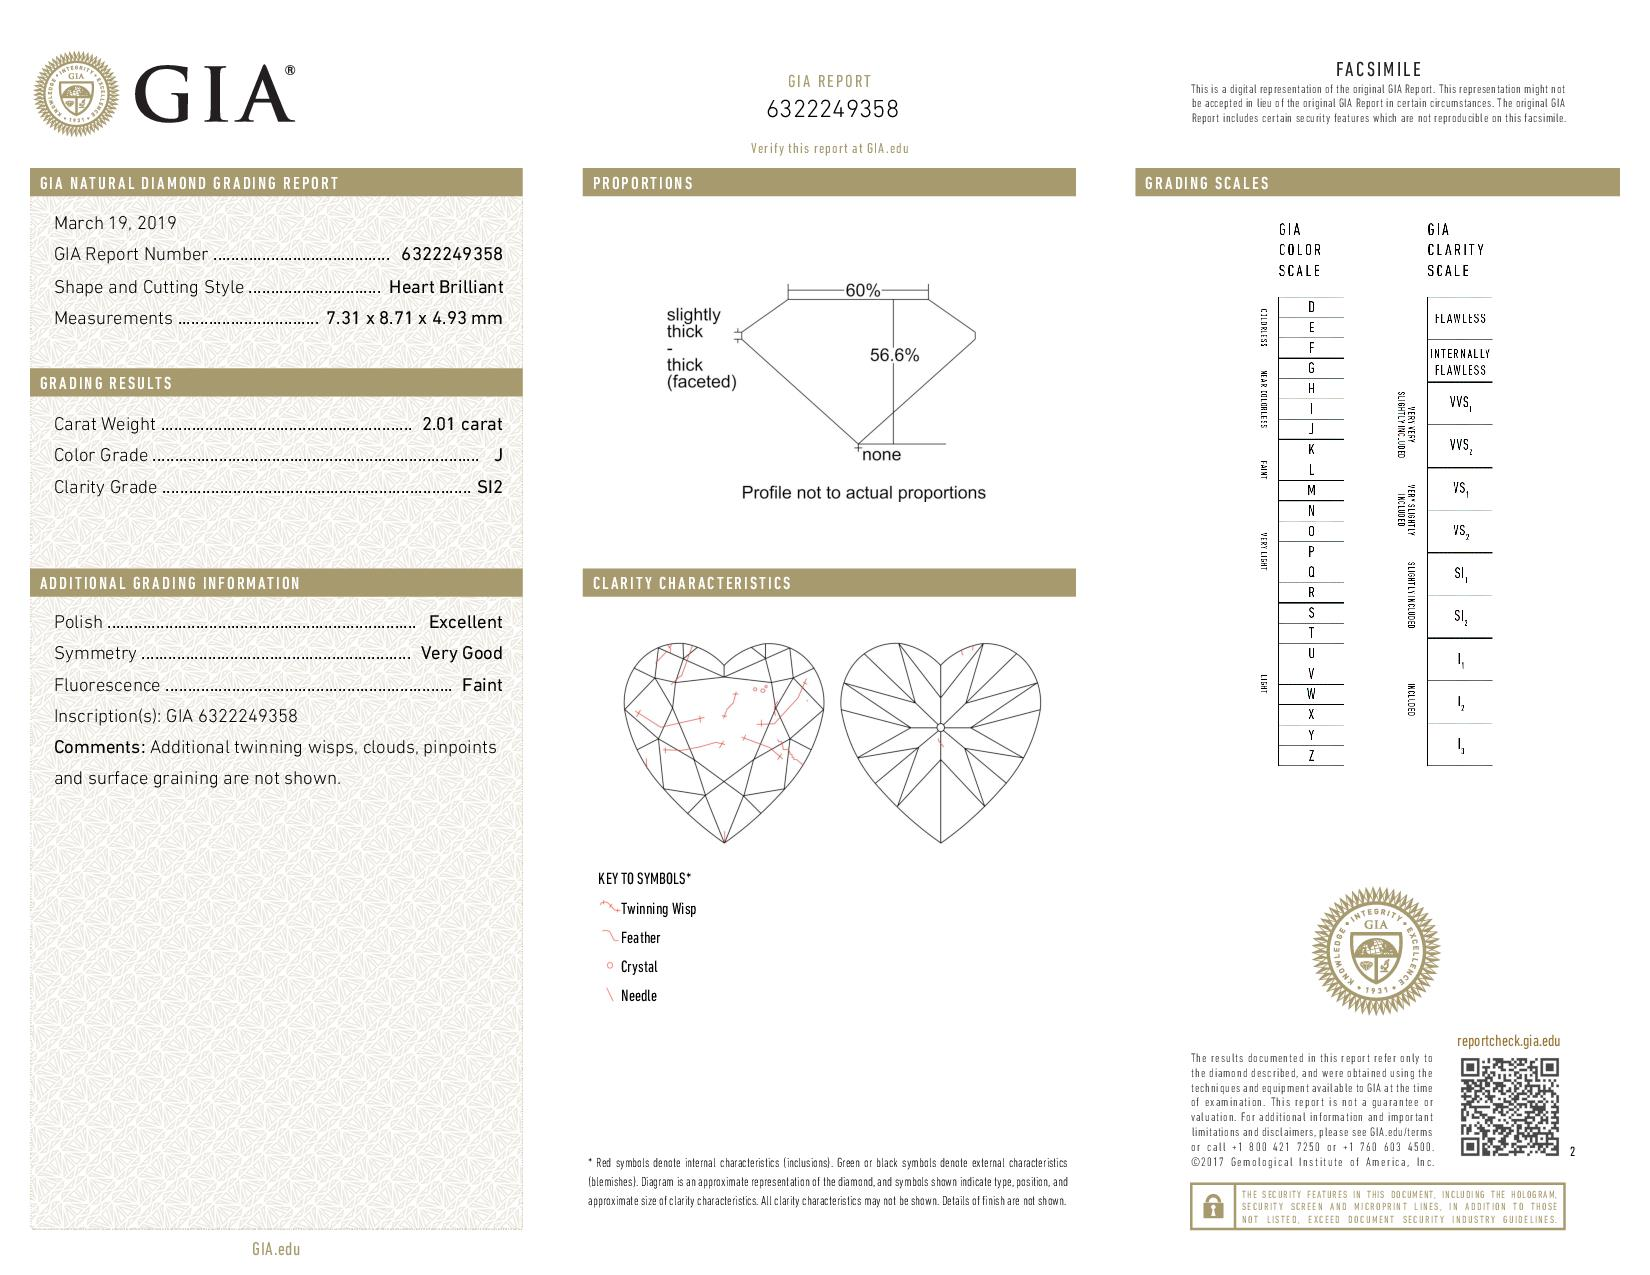 This is a 2.01 carat heart shape, J color, SI2 clarity natural diamond accompanied by a GIA grading report.